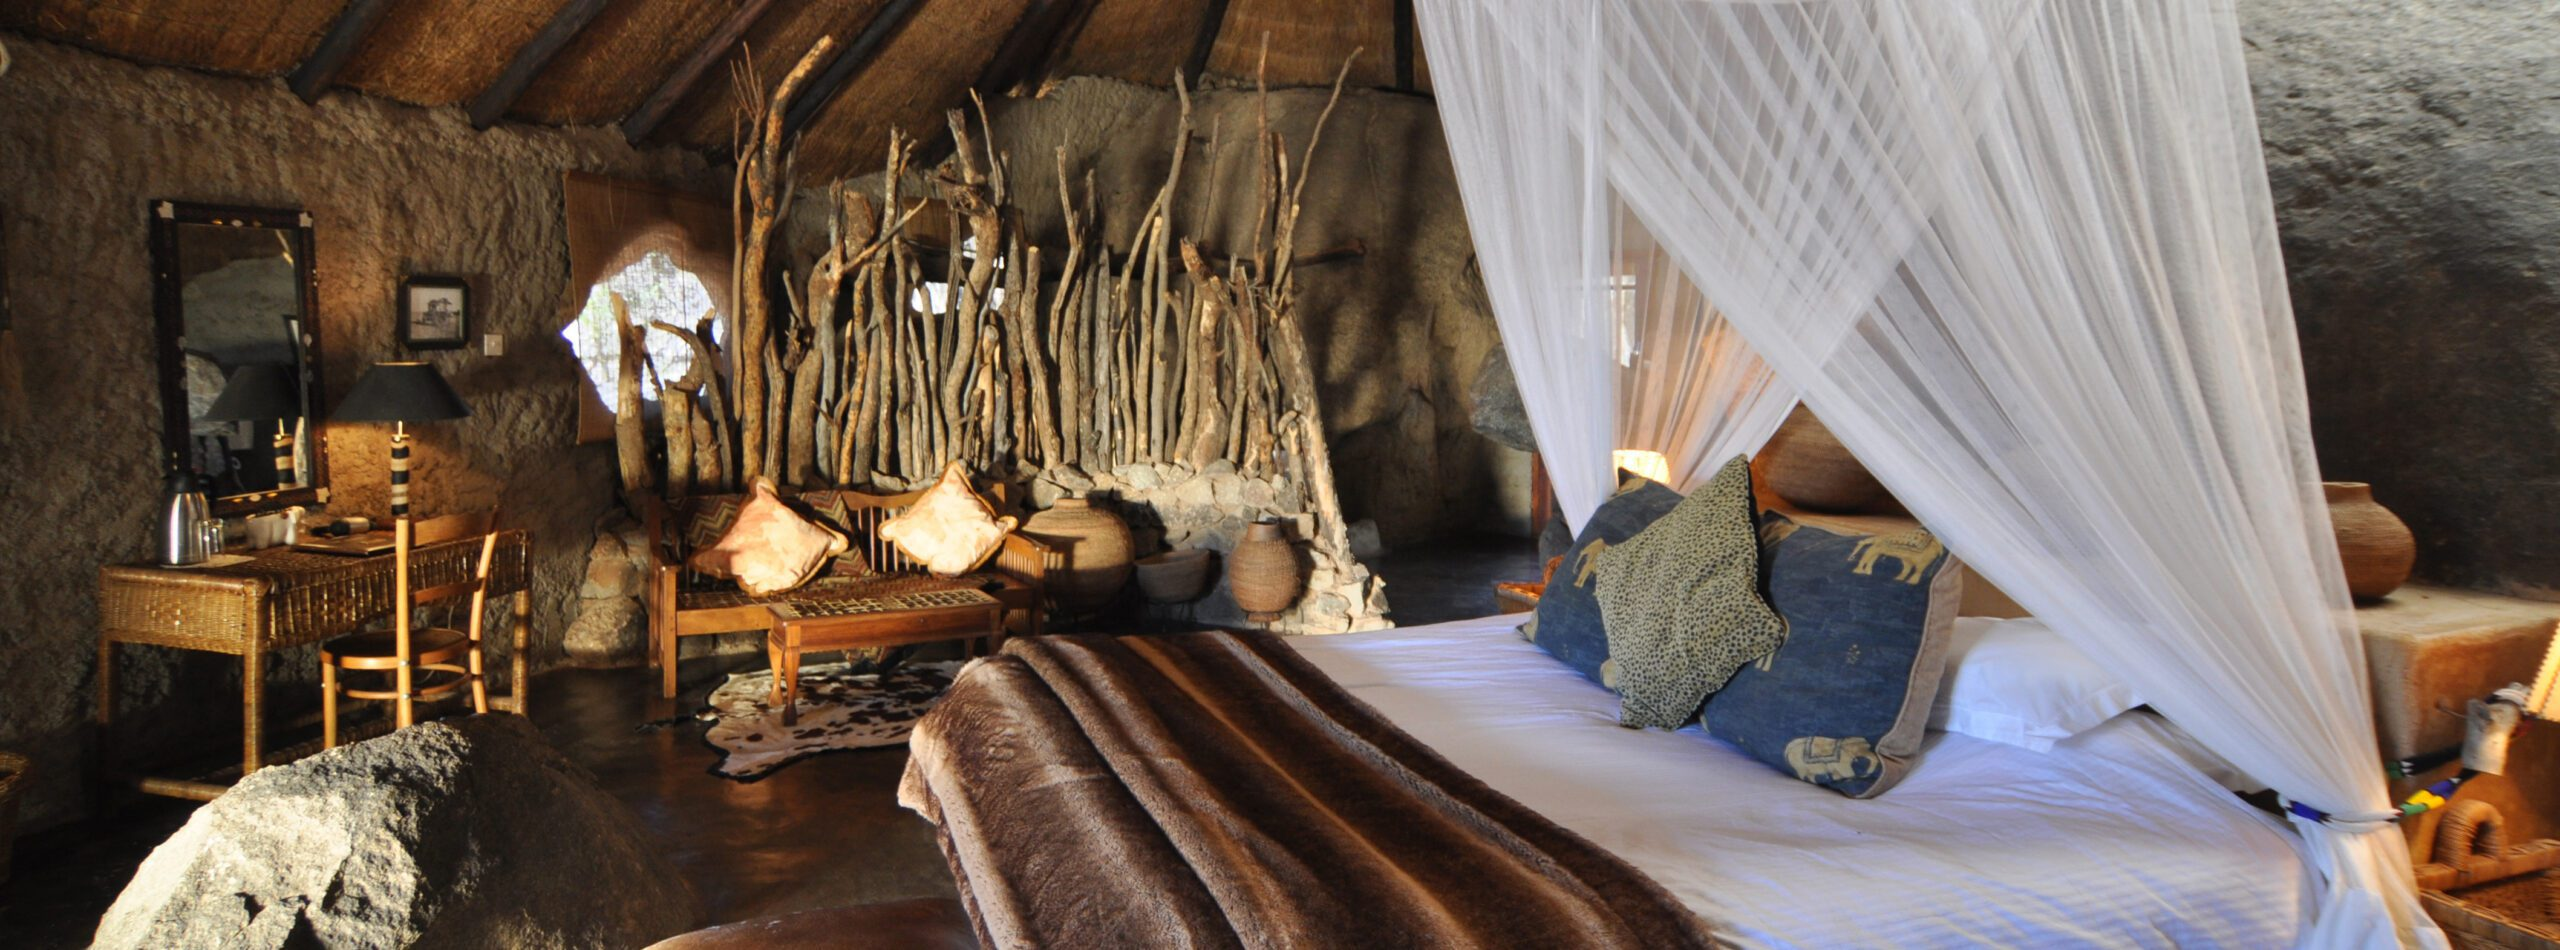 stay in this bedroom built into the rocks at Amalinda in Matobo HIlls on our Zimbabwe safari